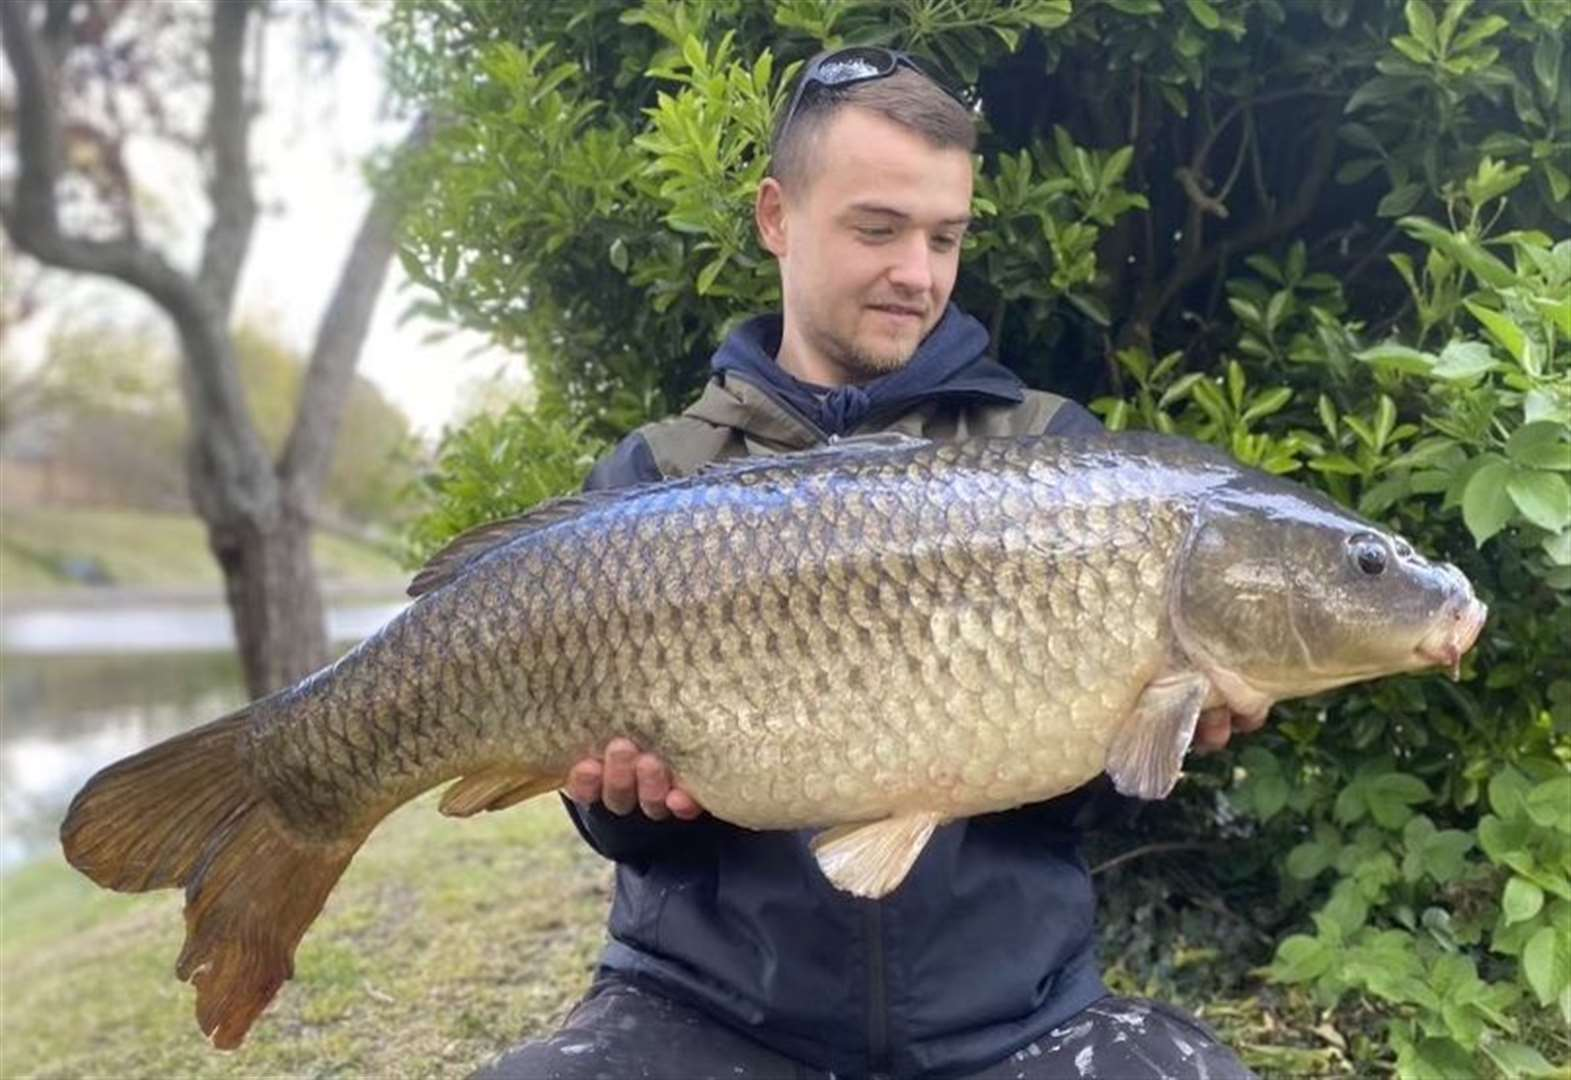 What a catch! Man's amazement over landing 3ft carp